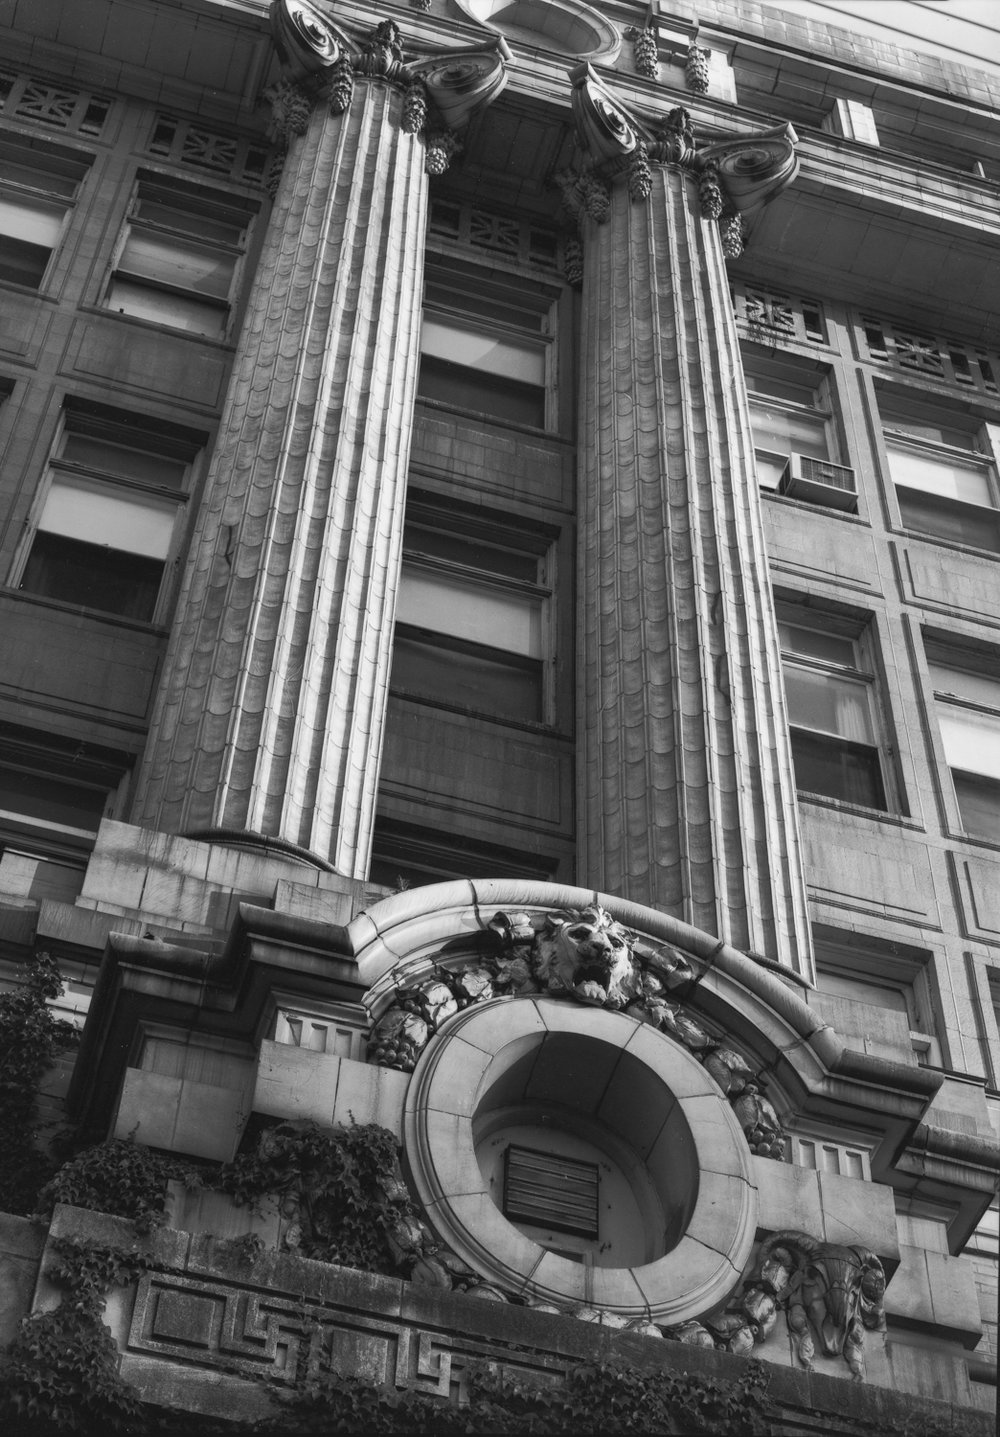 Cook County Hospital Columns at Entrance ©2000